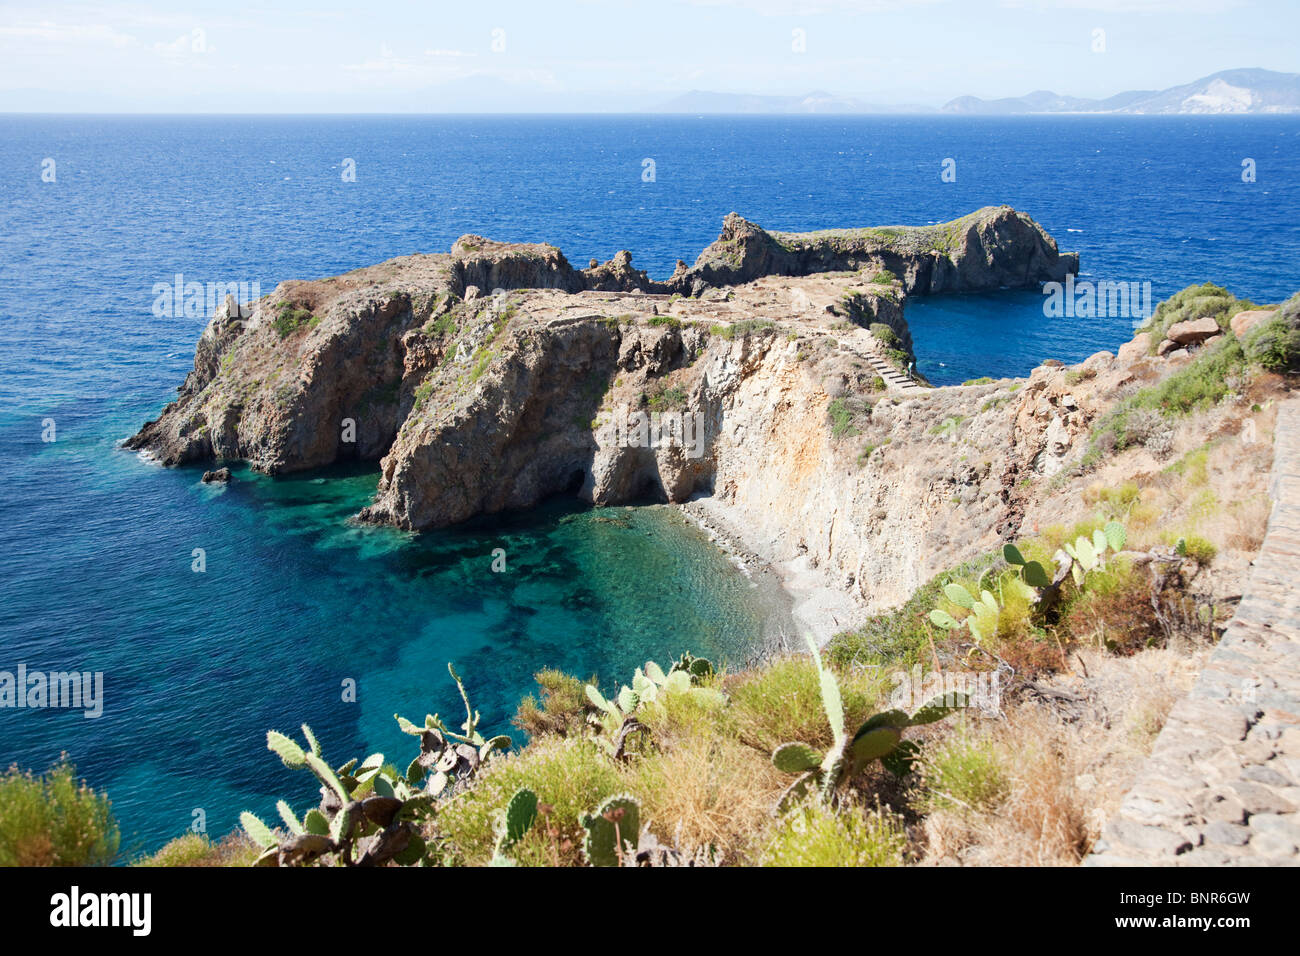 Headland Punta Milazzese of island Panarea of Aeolian Islands contain prehistory ruin site on the top. - Stock Image